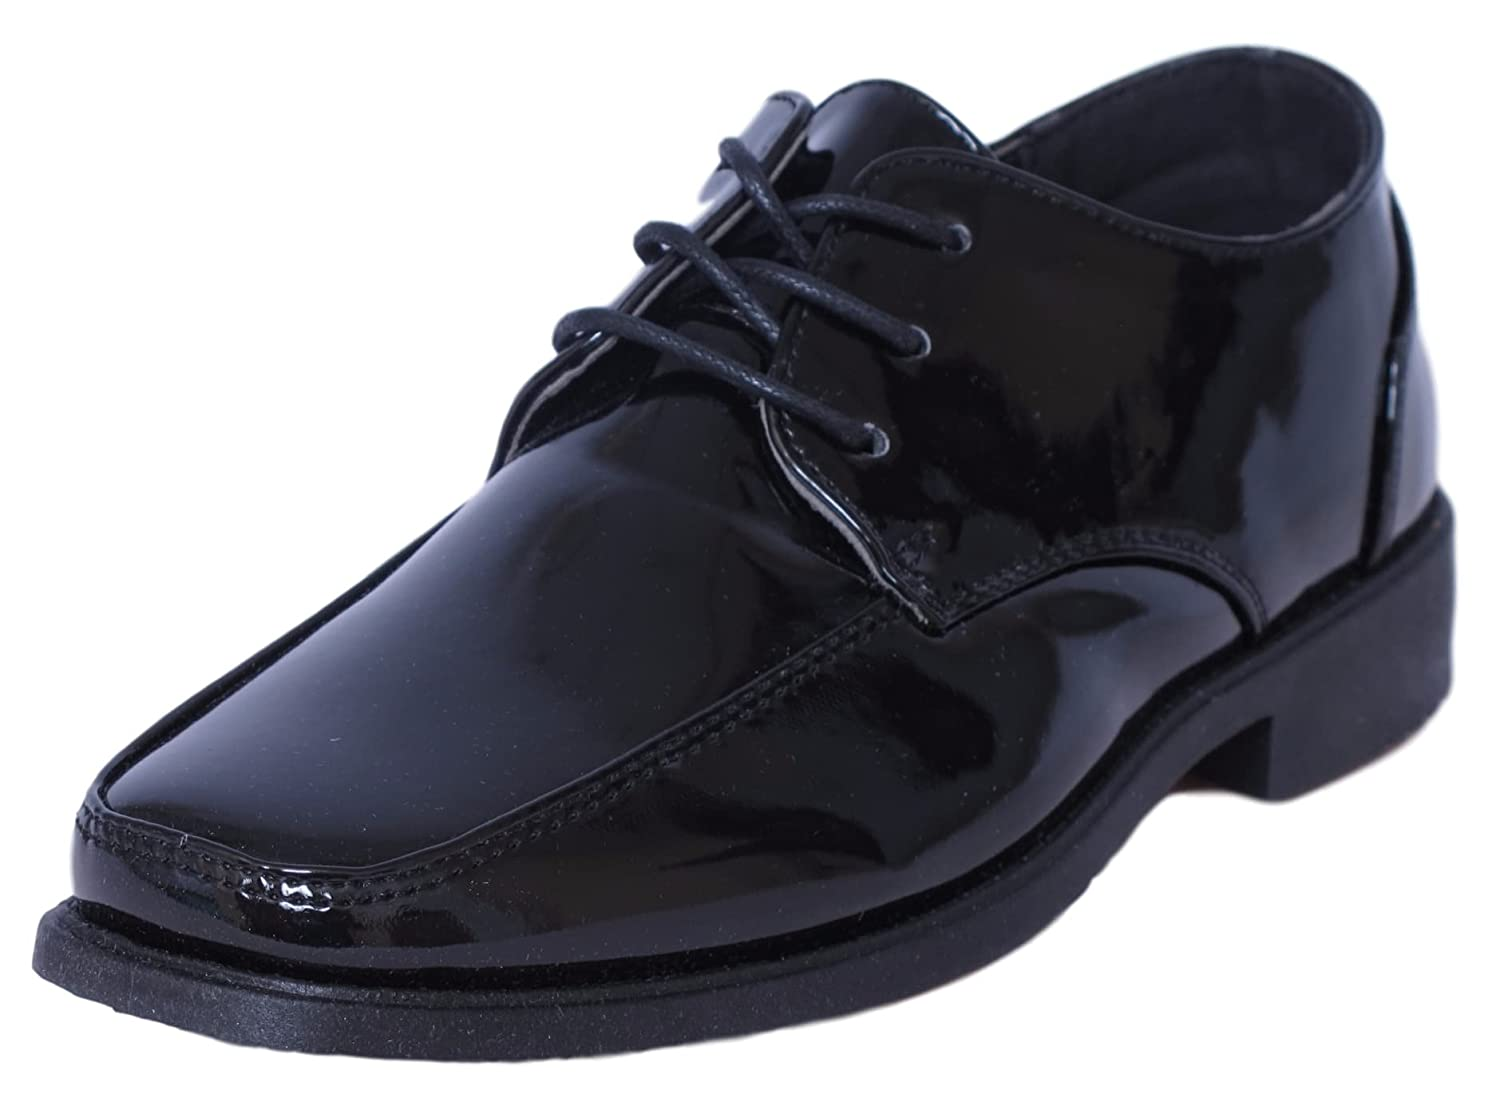 Josmo Boys Lace-up Dress Shoes (Toddler, Little Kid, Big Kid)